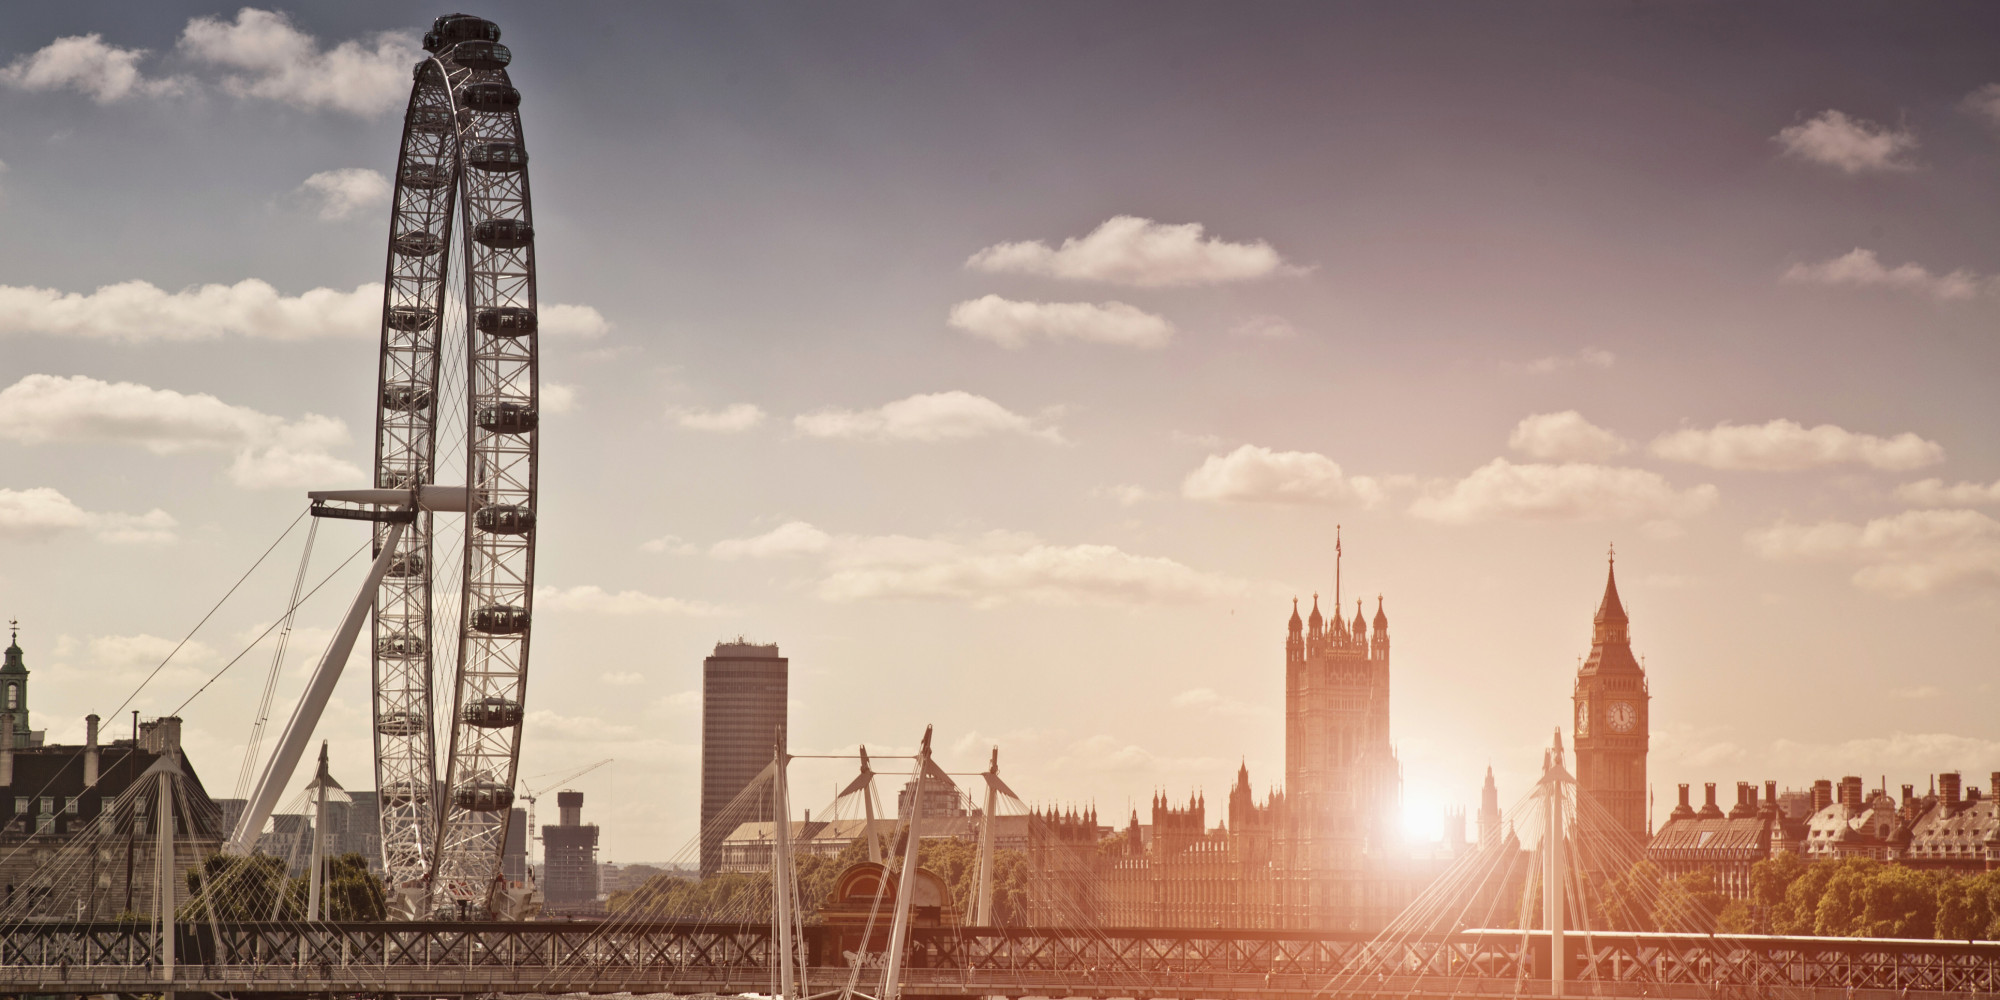 trip to london The heartbeat of britain, a london family vacation can feature sights such as buckingham palace, the london eye and much more.